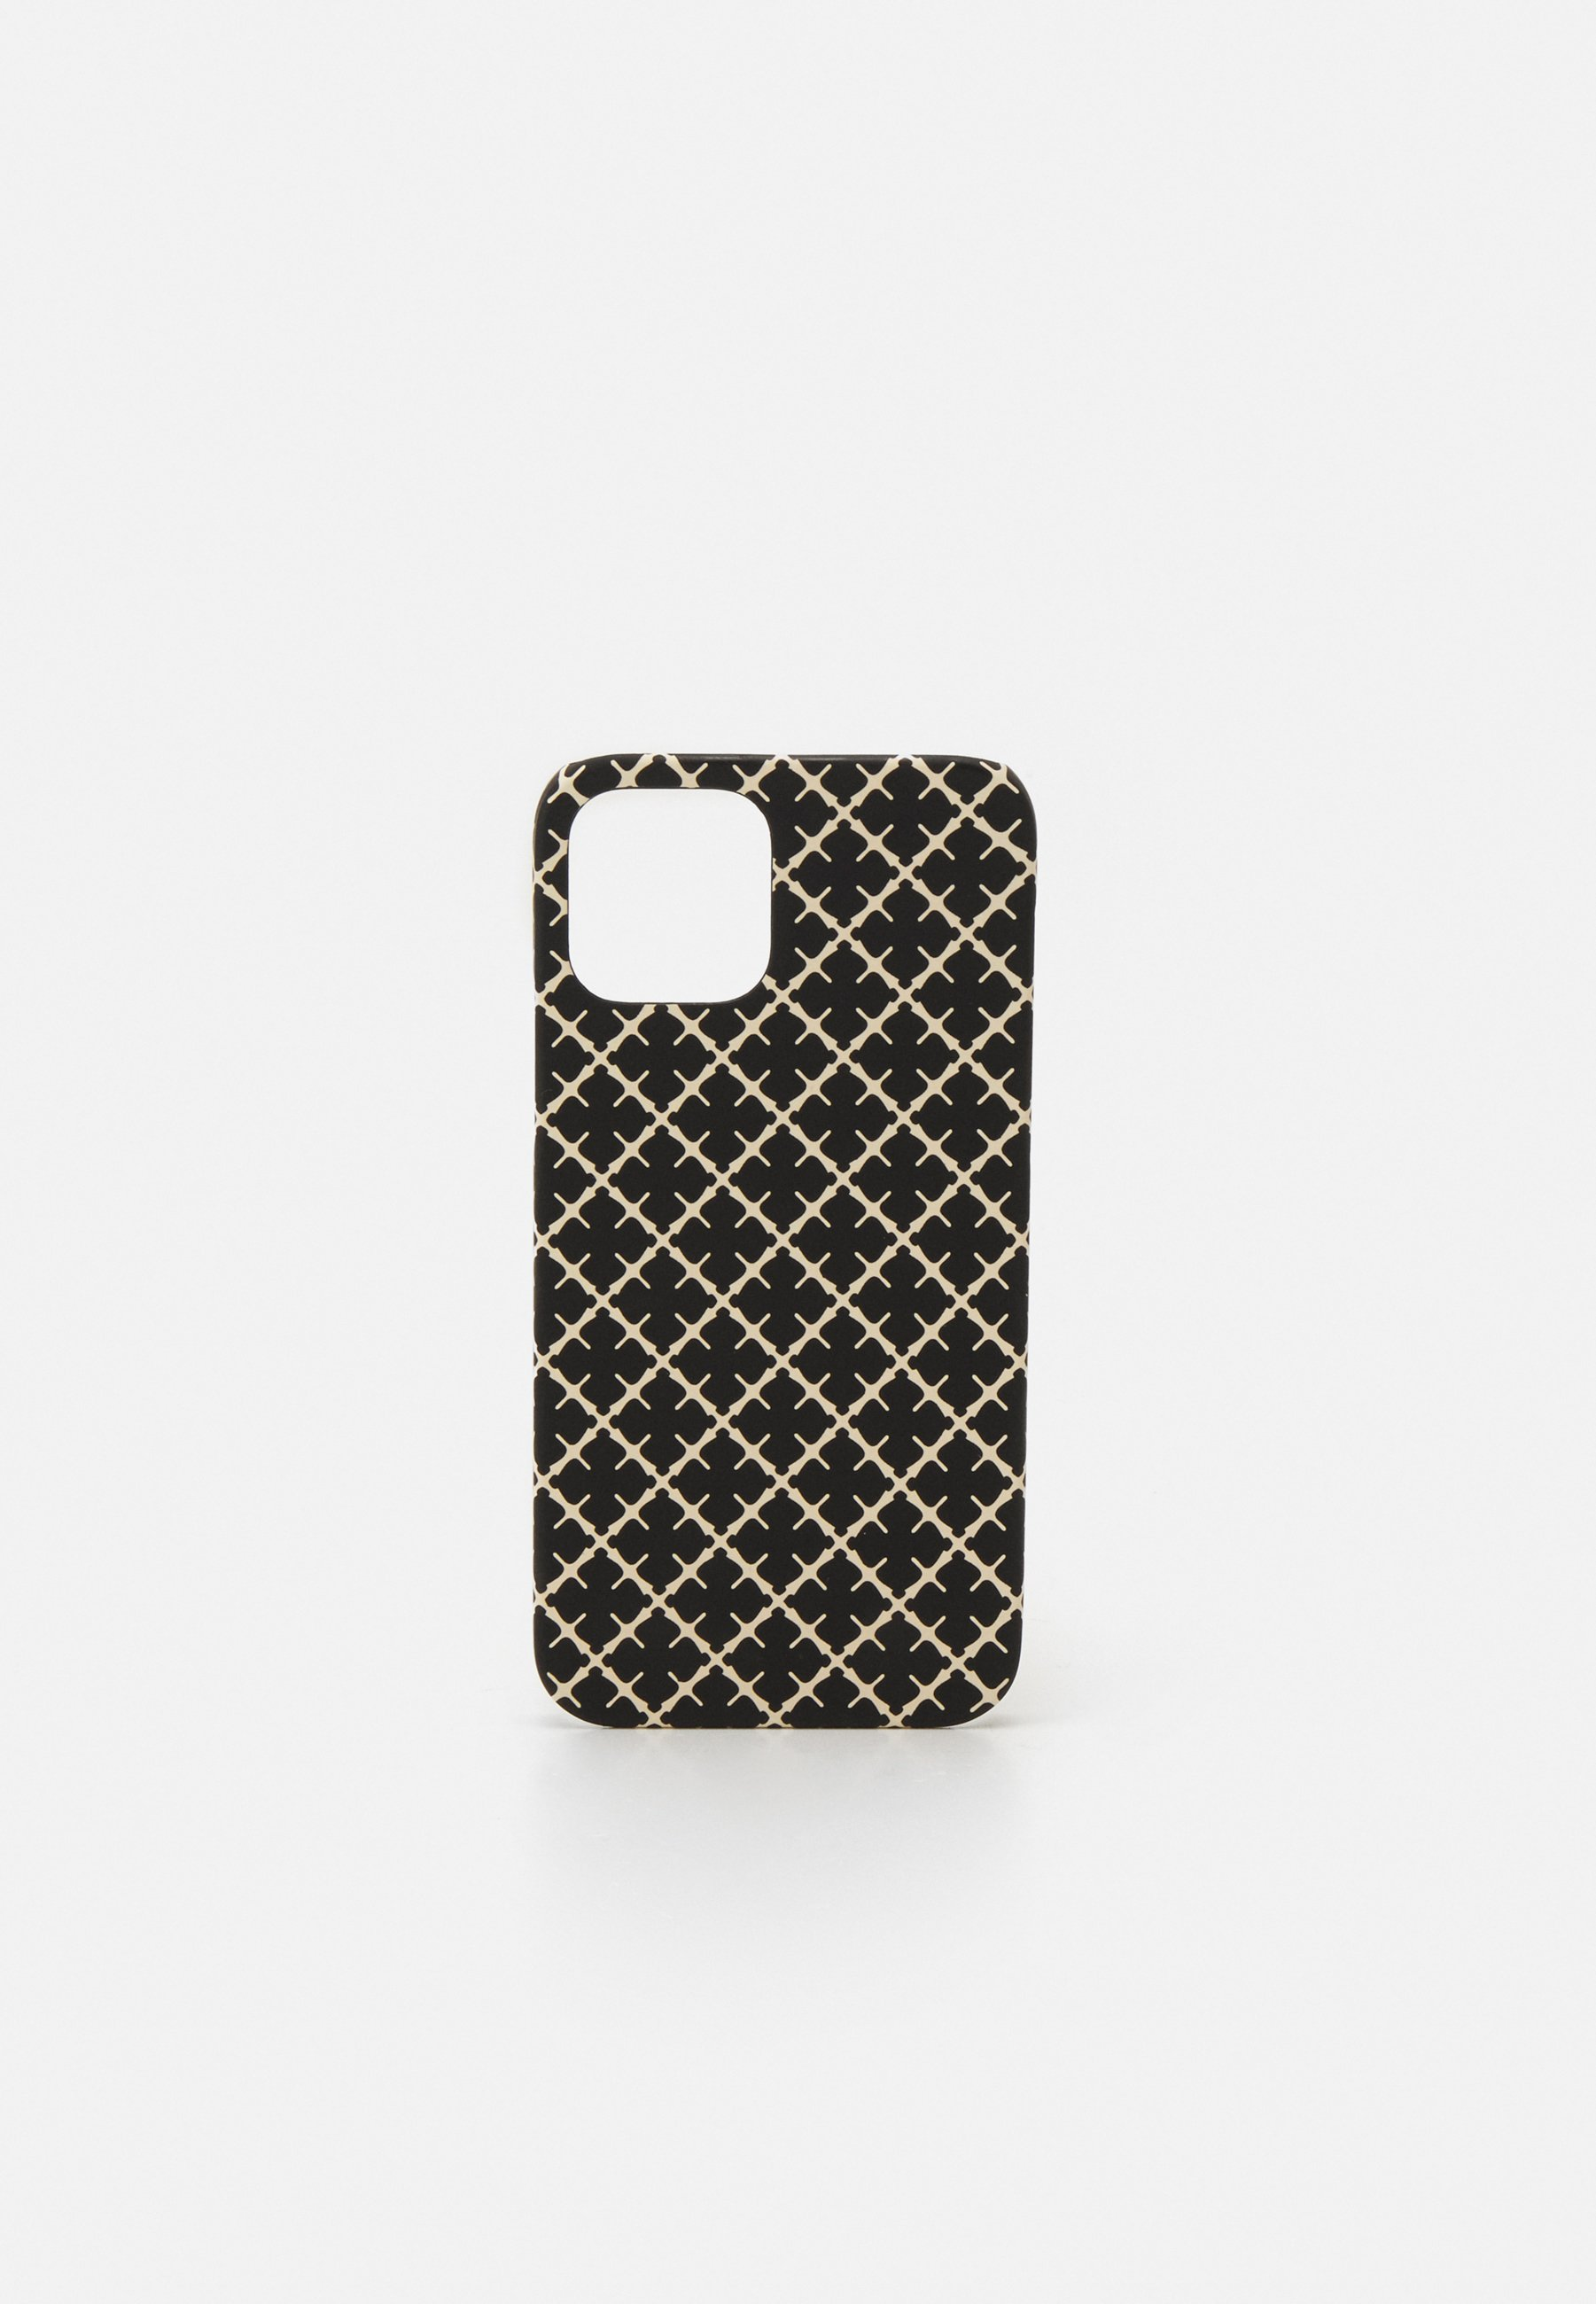 Donna PAMSY iPhone 12 - Portacellulare